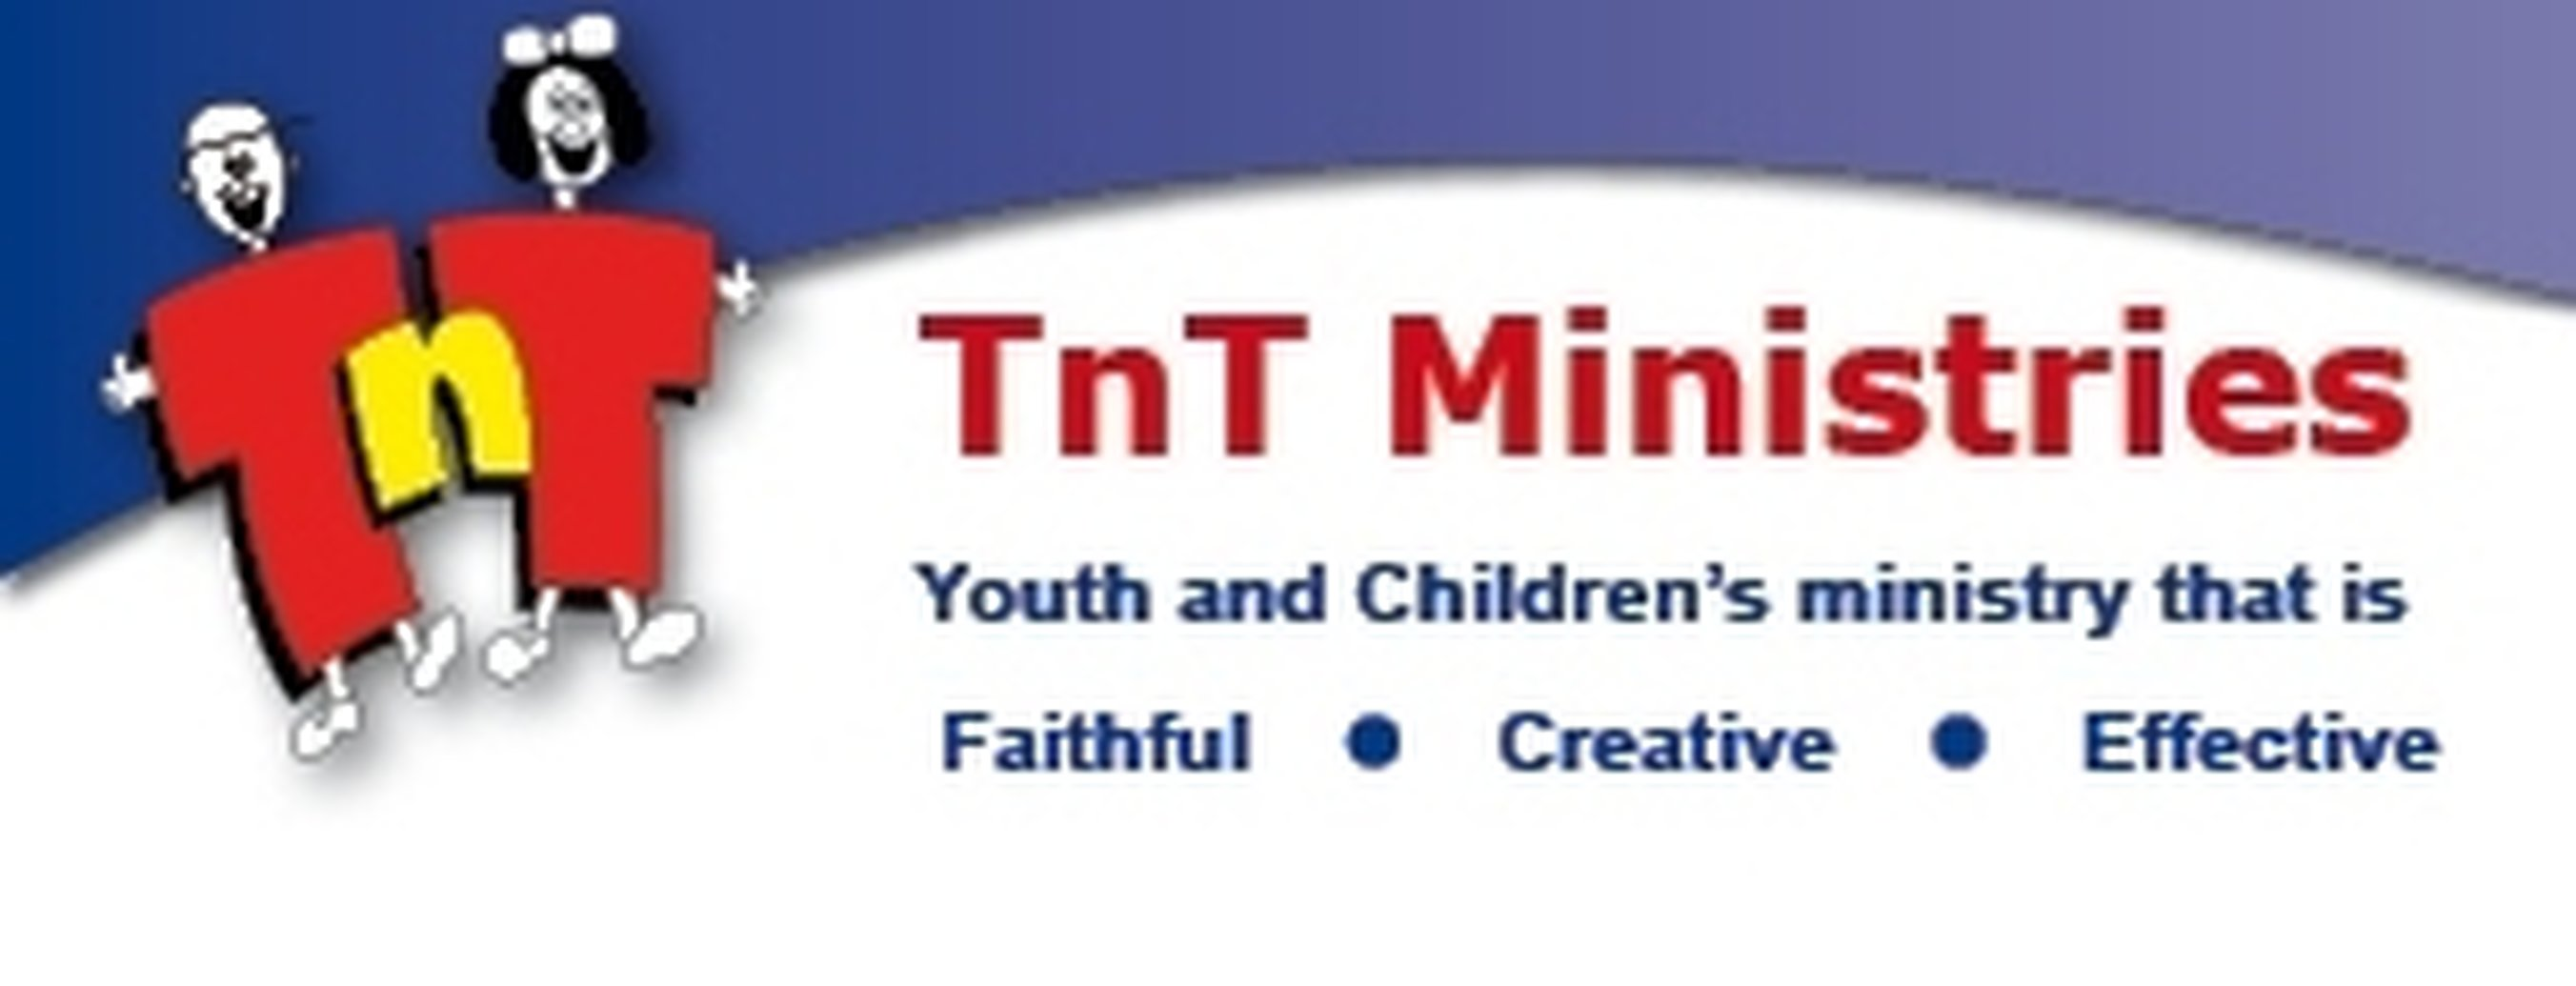 TnT Training Event - March 3, 2012 in Edinburgh